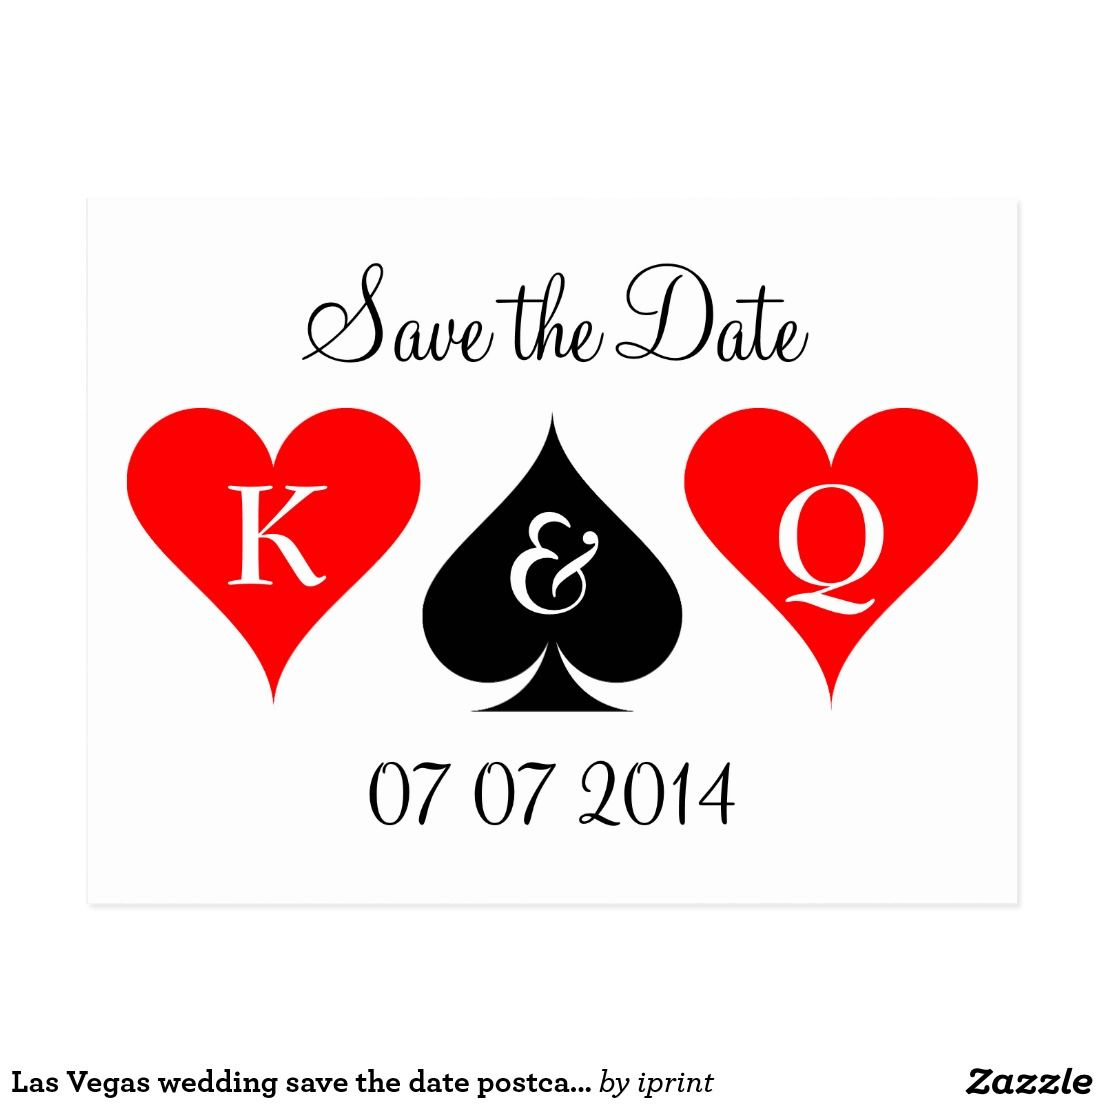 Las Vegas wedding save the date postcards | Las vegas weddings ...